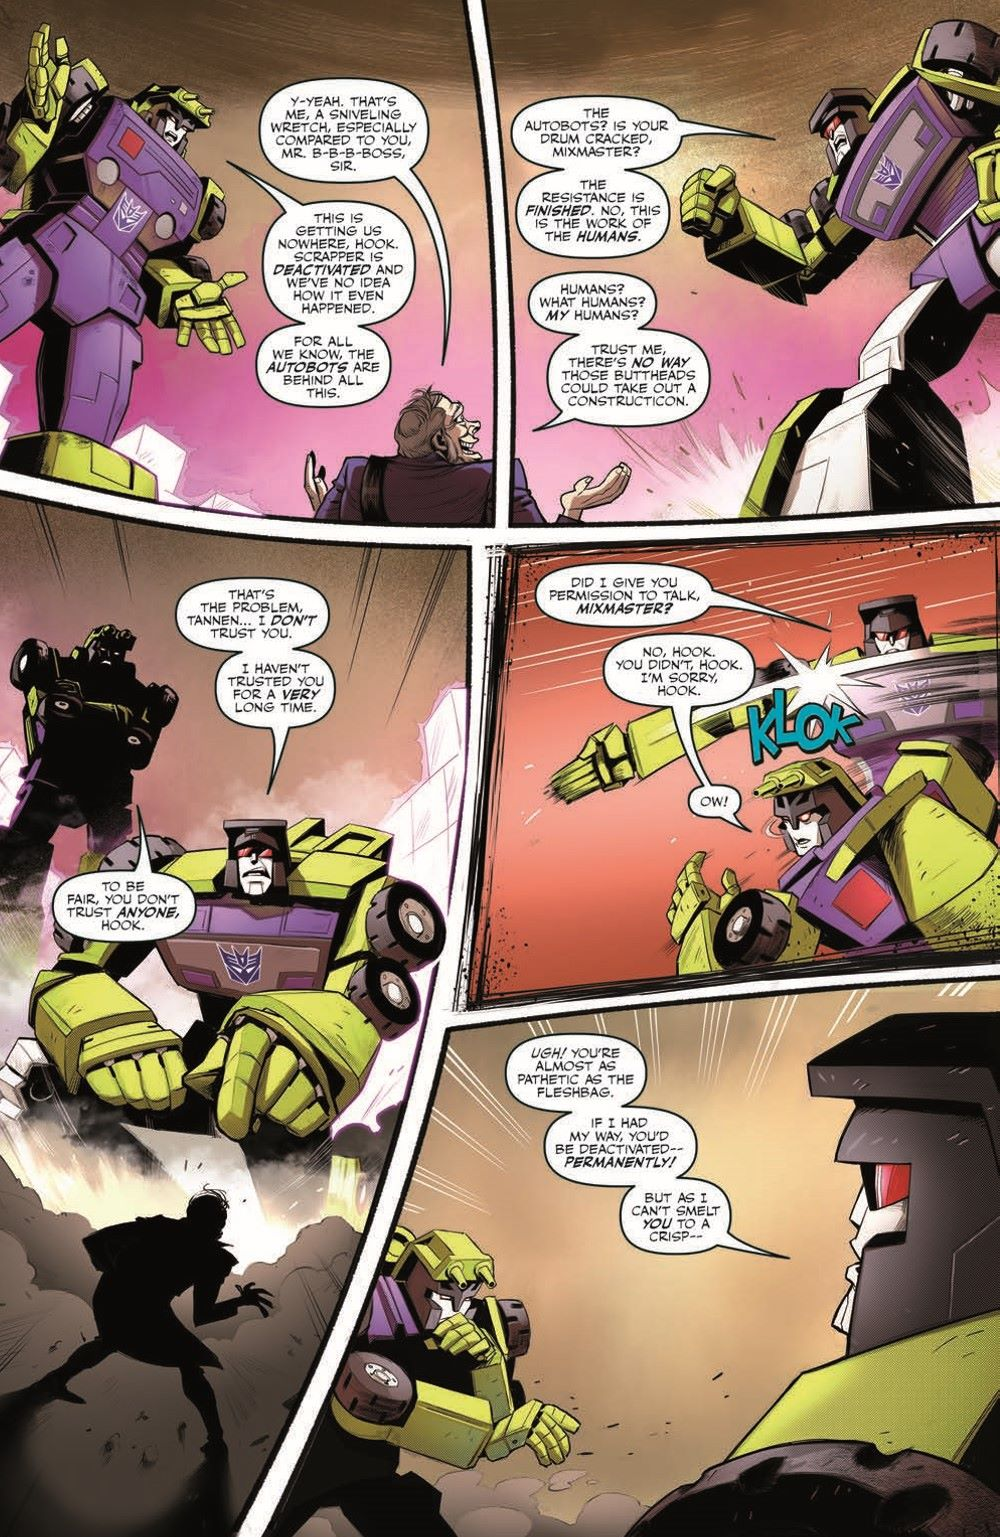 TF_BTTF03-pr-4 ComicList Previews: TRANSFORMERS BACK TO THE FUTURE #3 (OF 4)